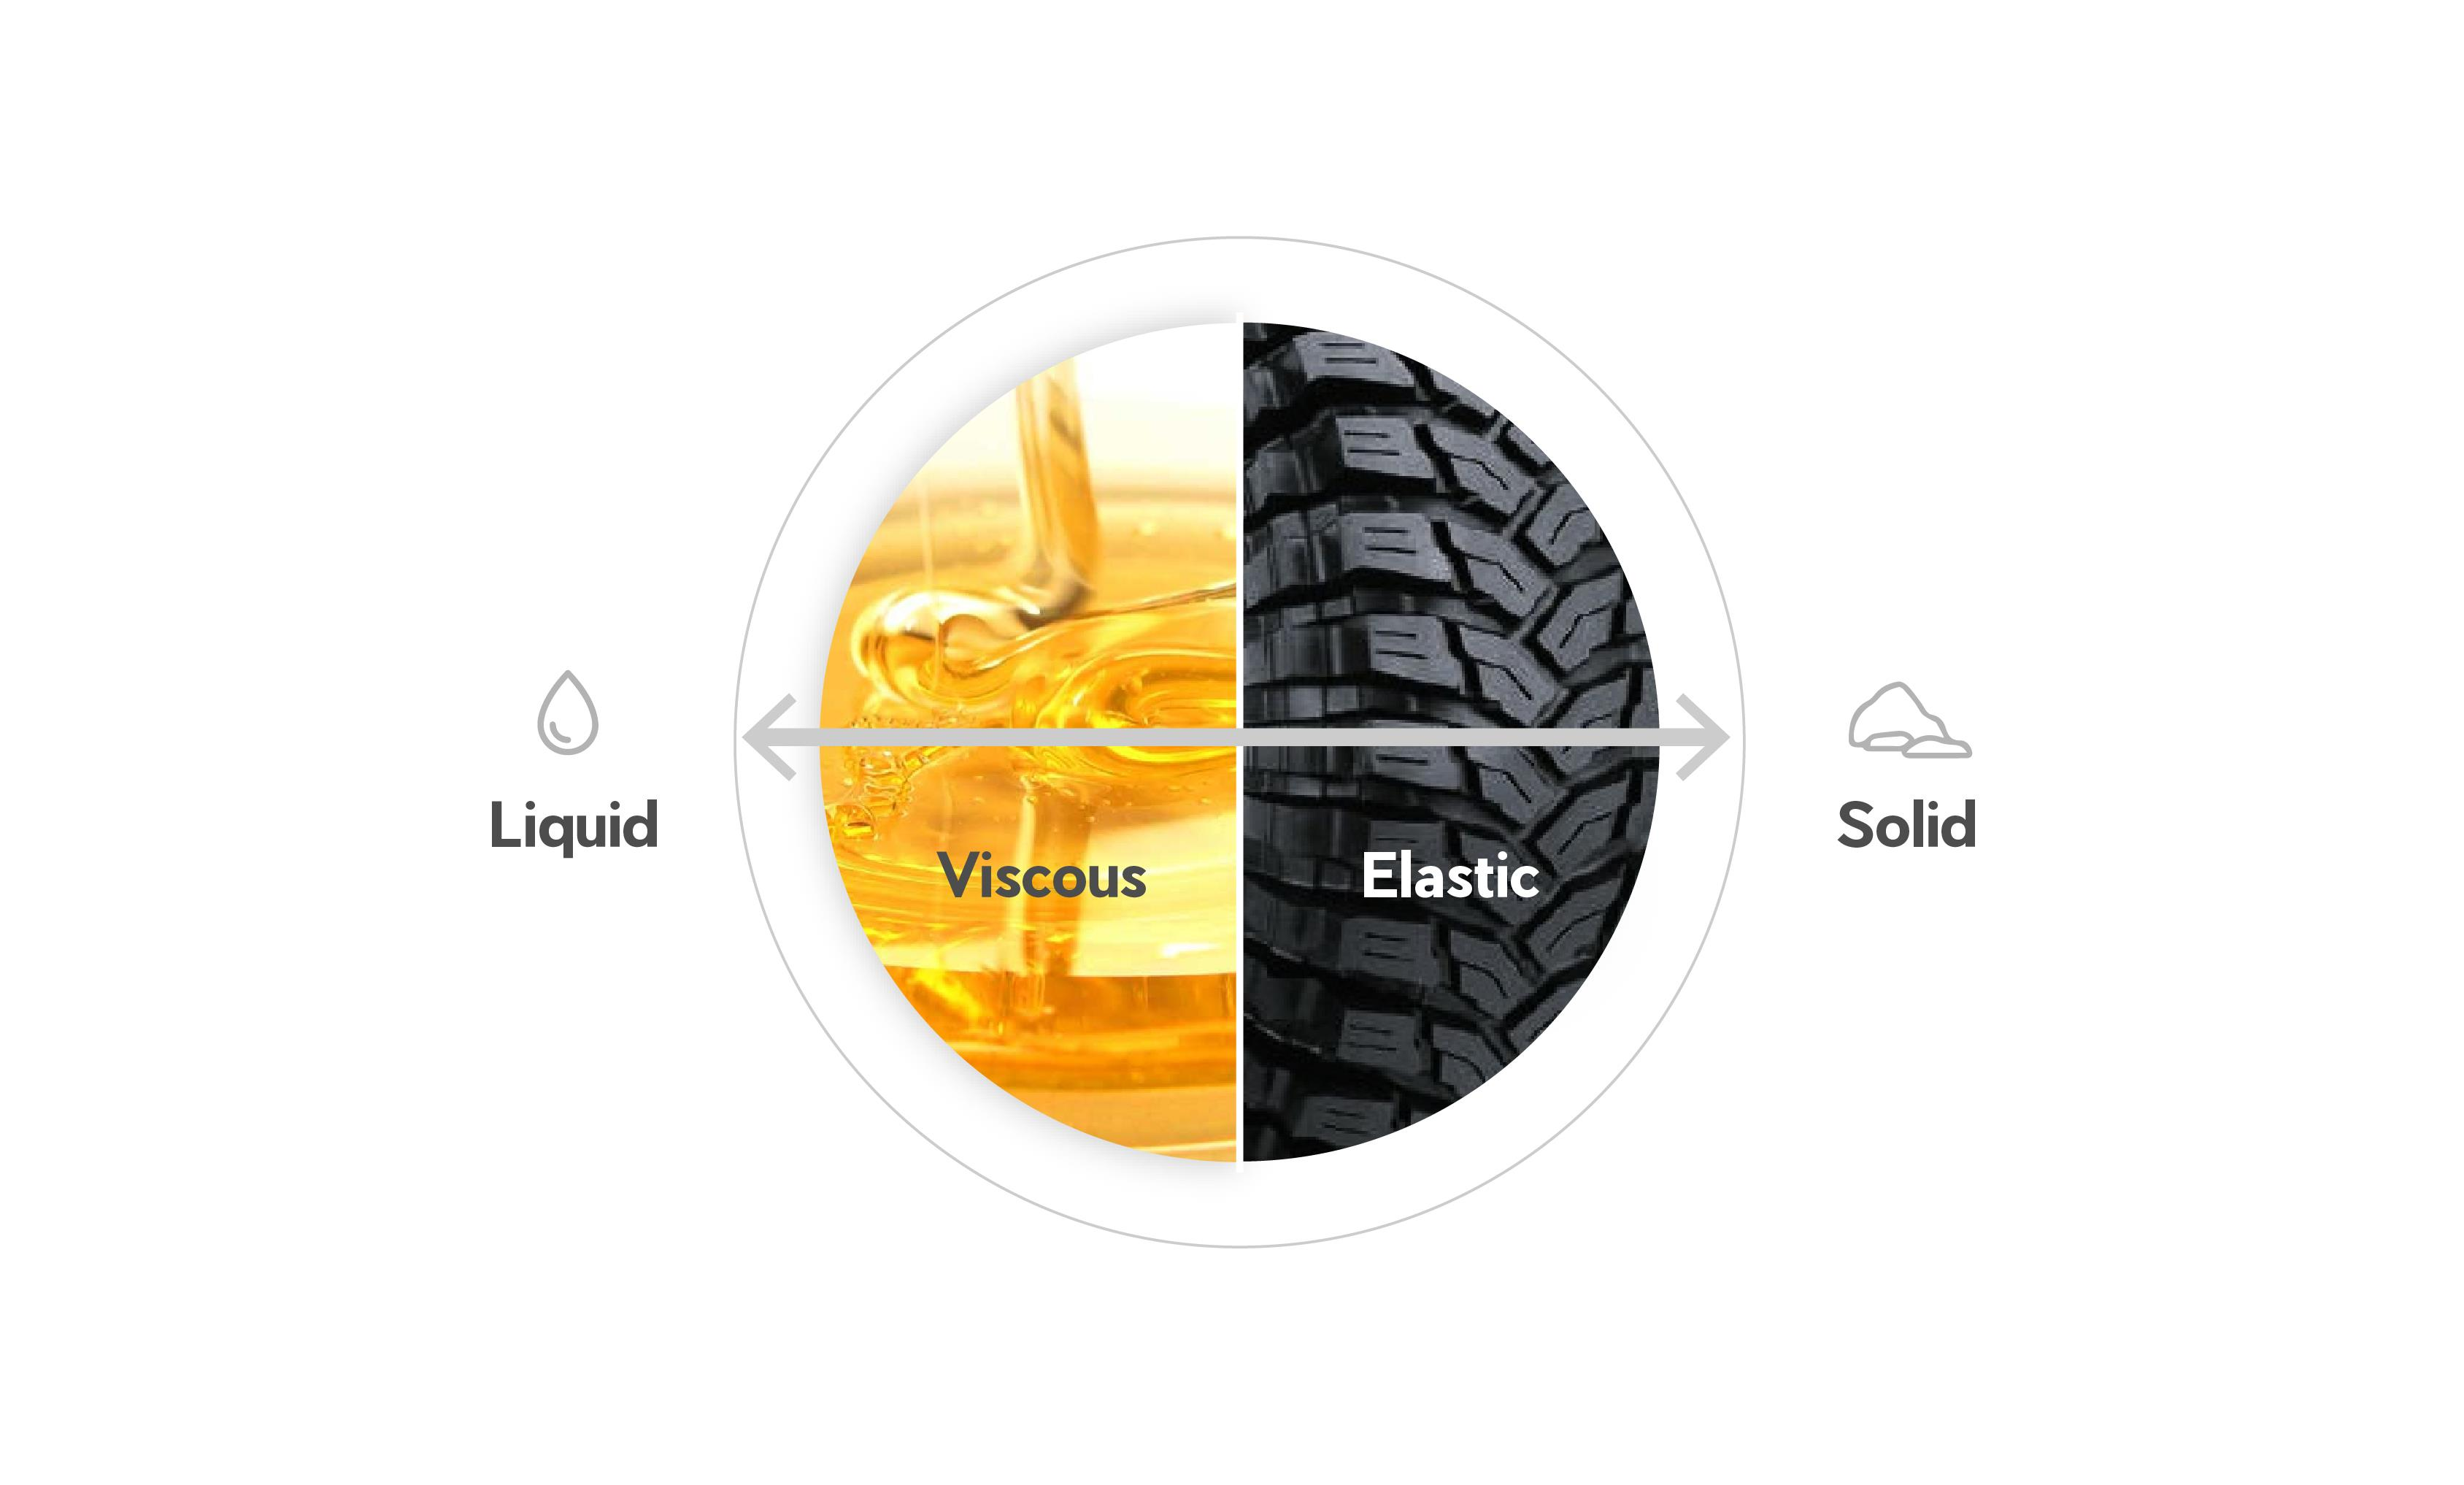 Viscoelastic materials explained by comparing oil to rubber